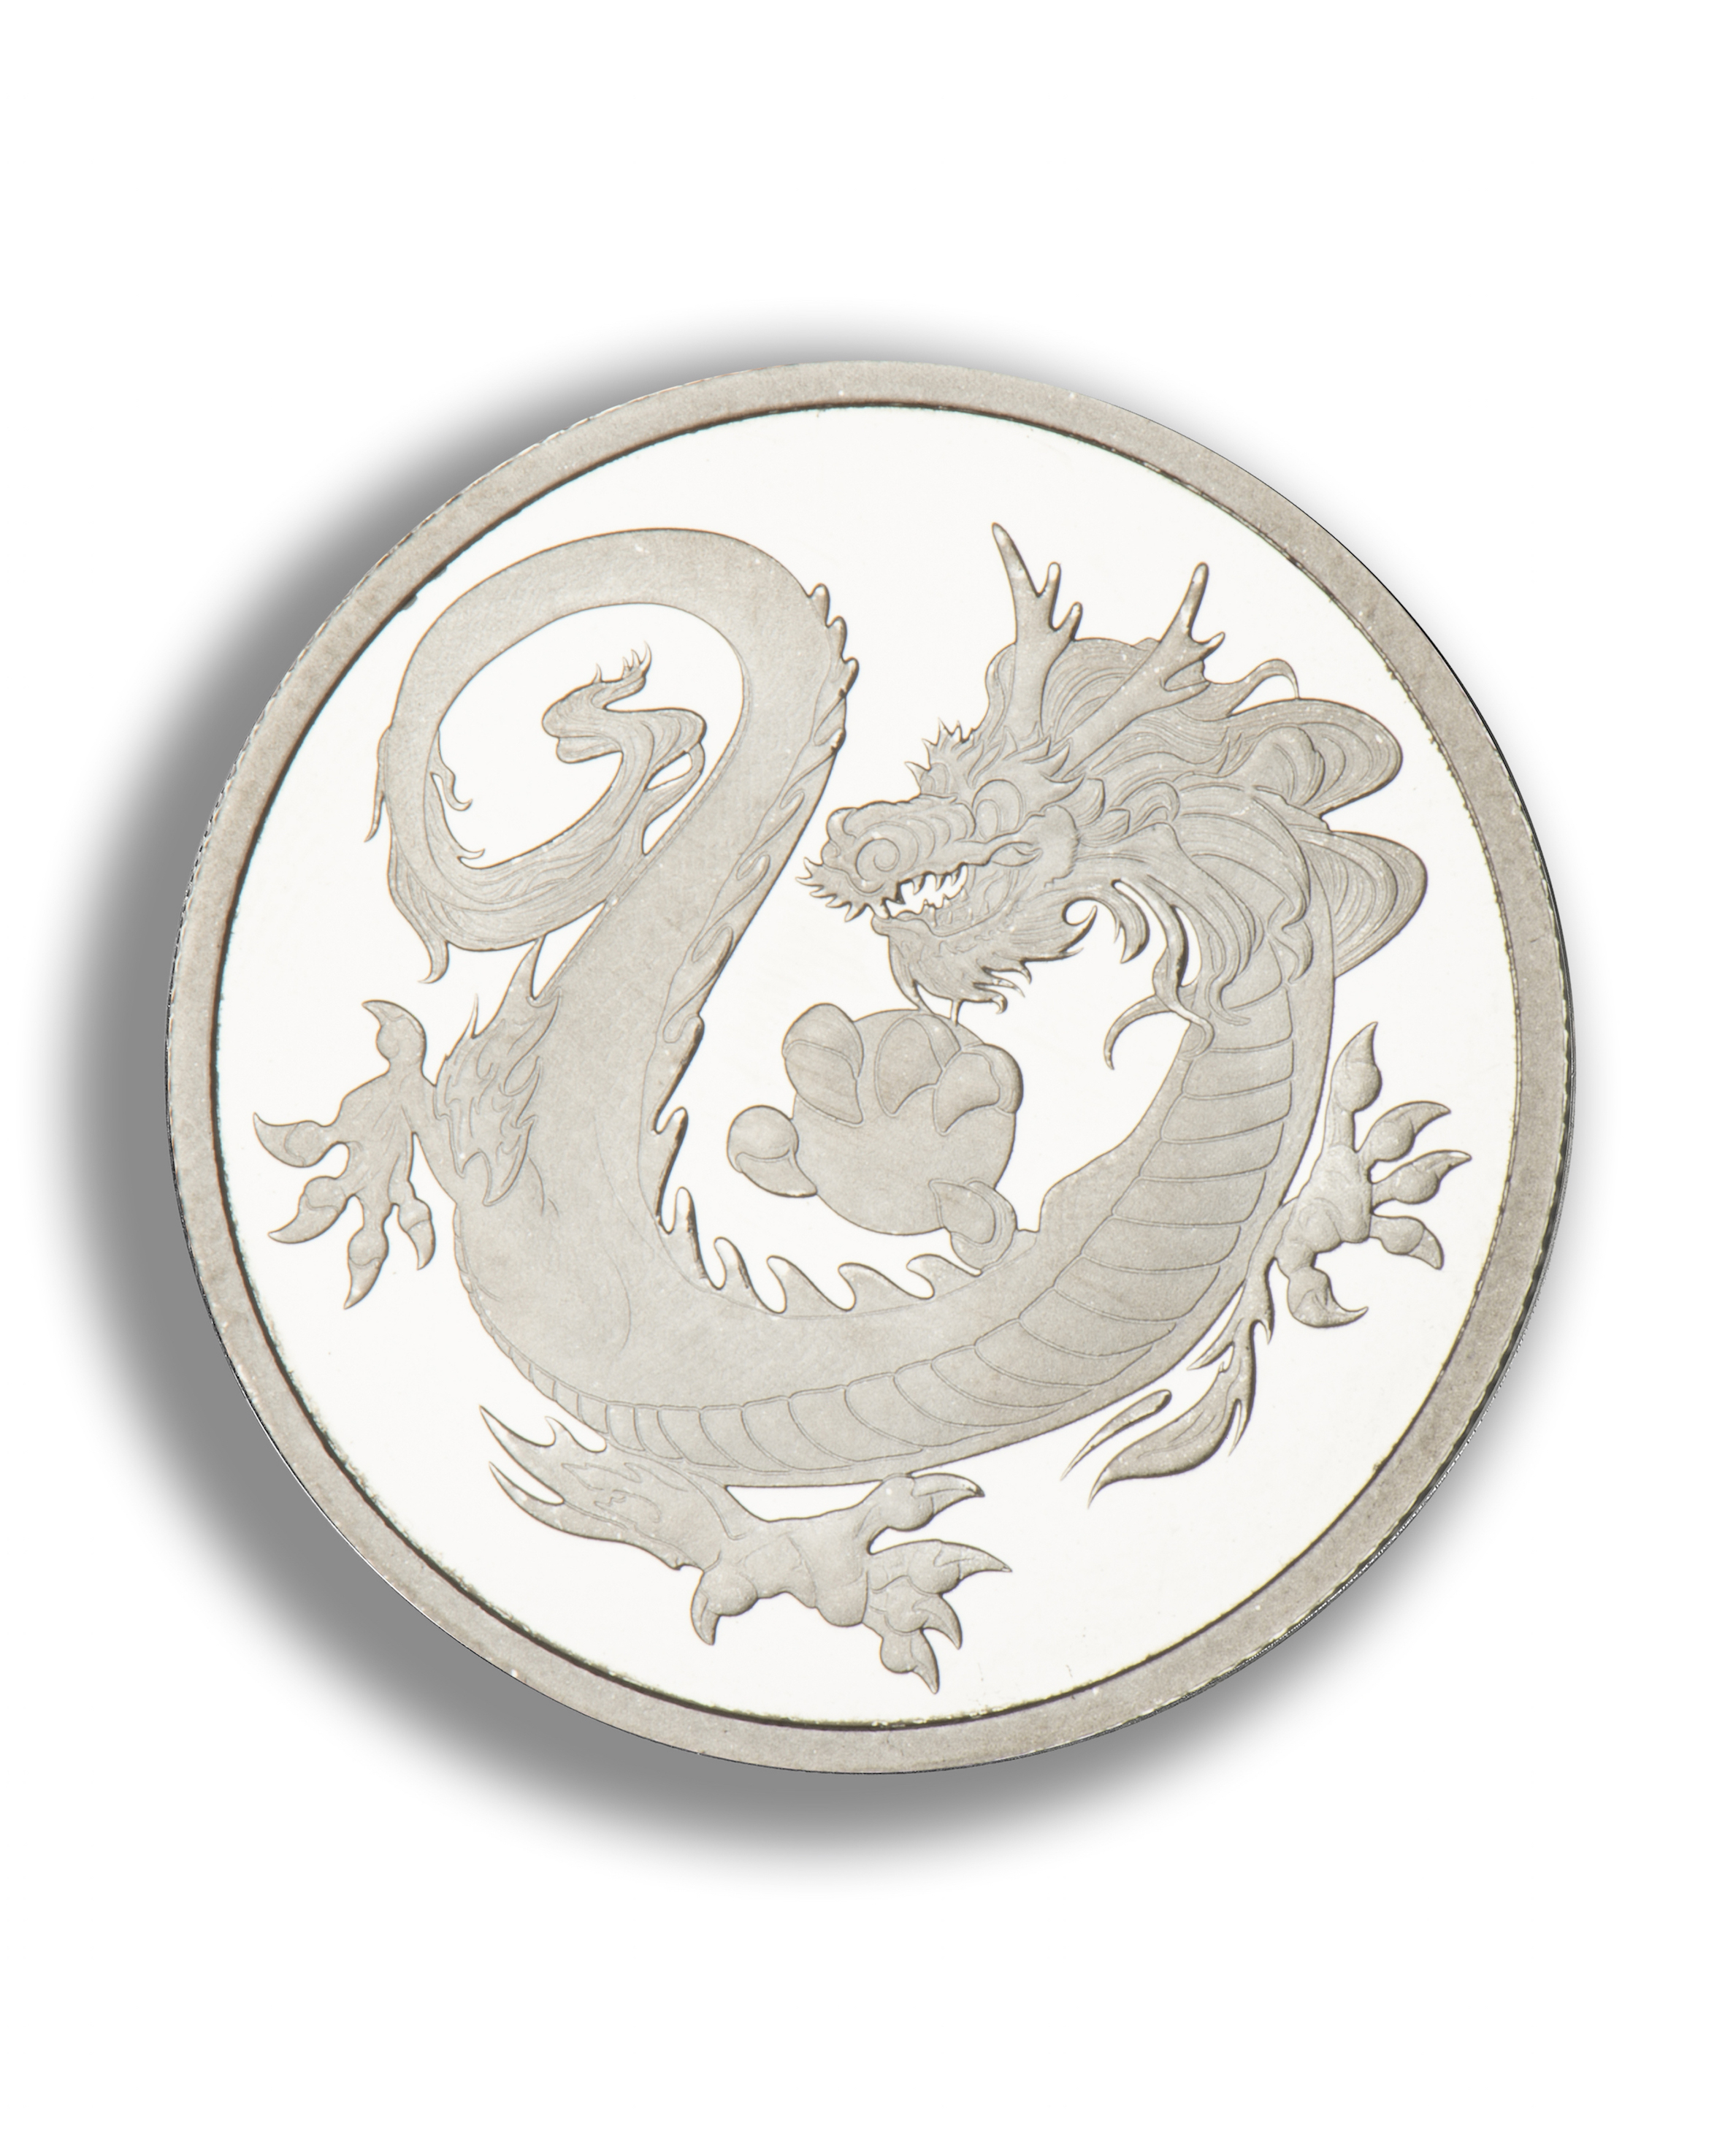 2018 1 Oz Tuvalu Dragon 999 Rhodium Coin Lpm